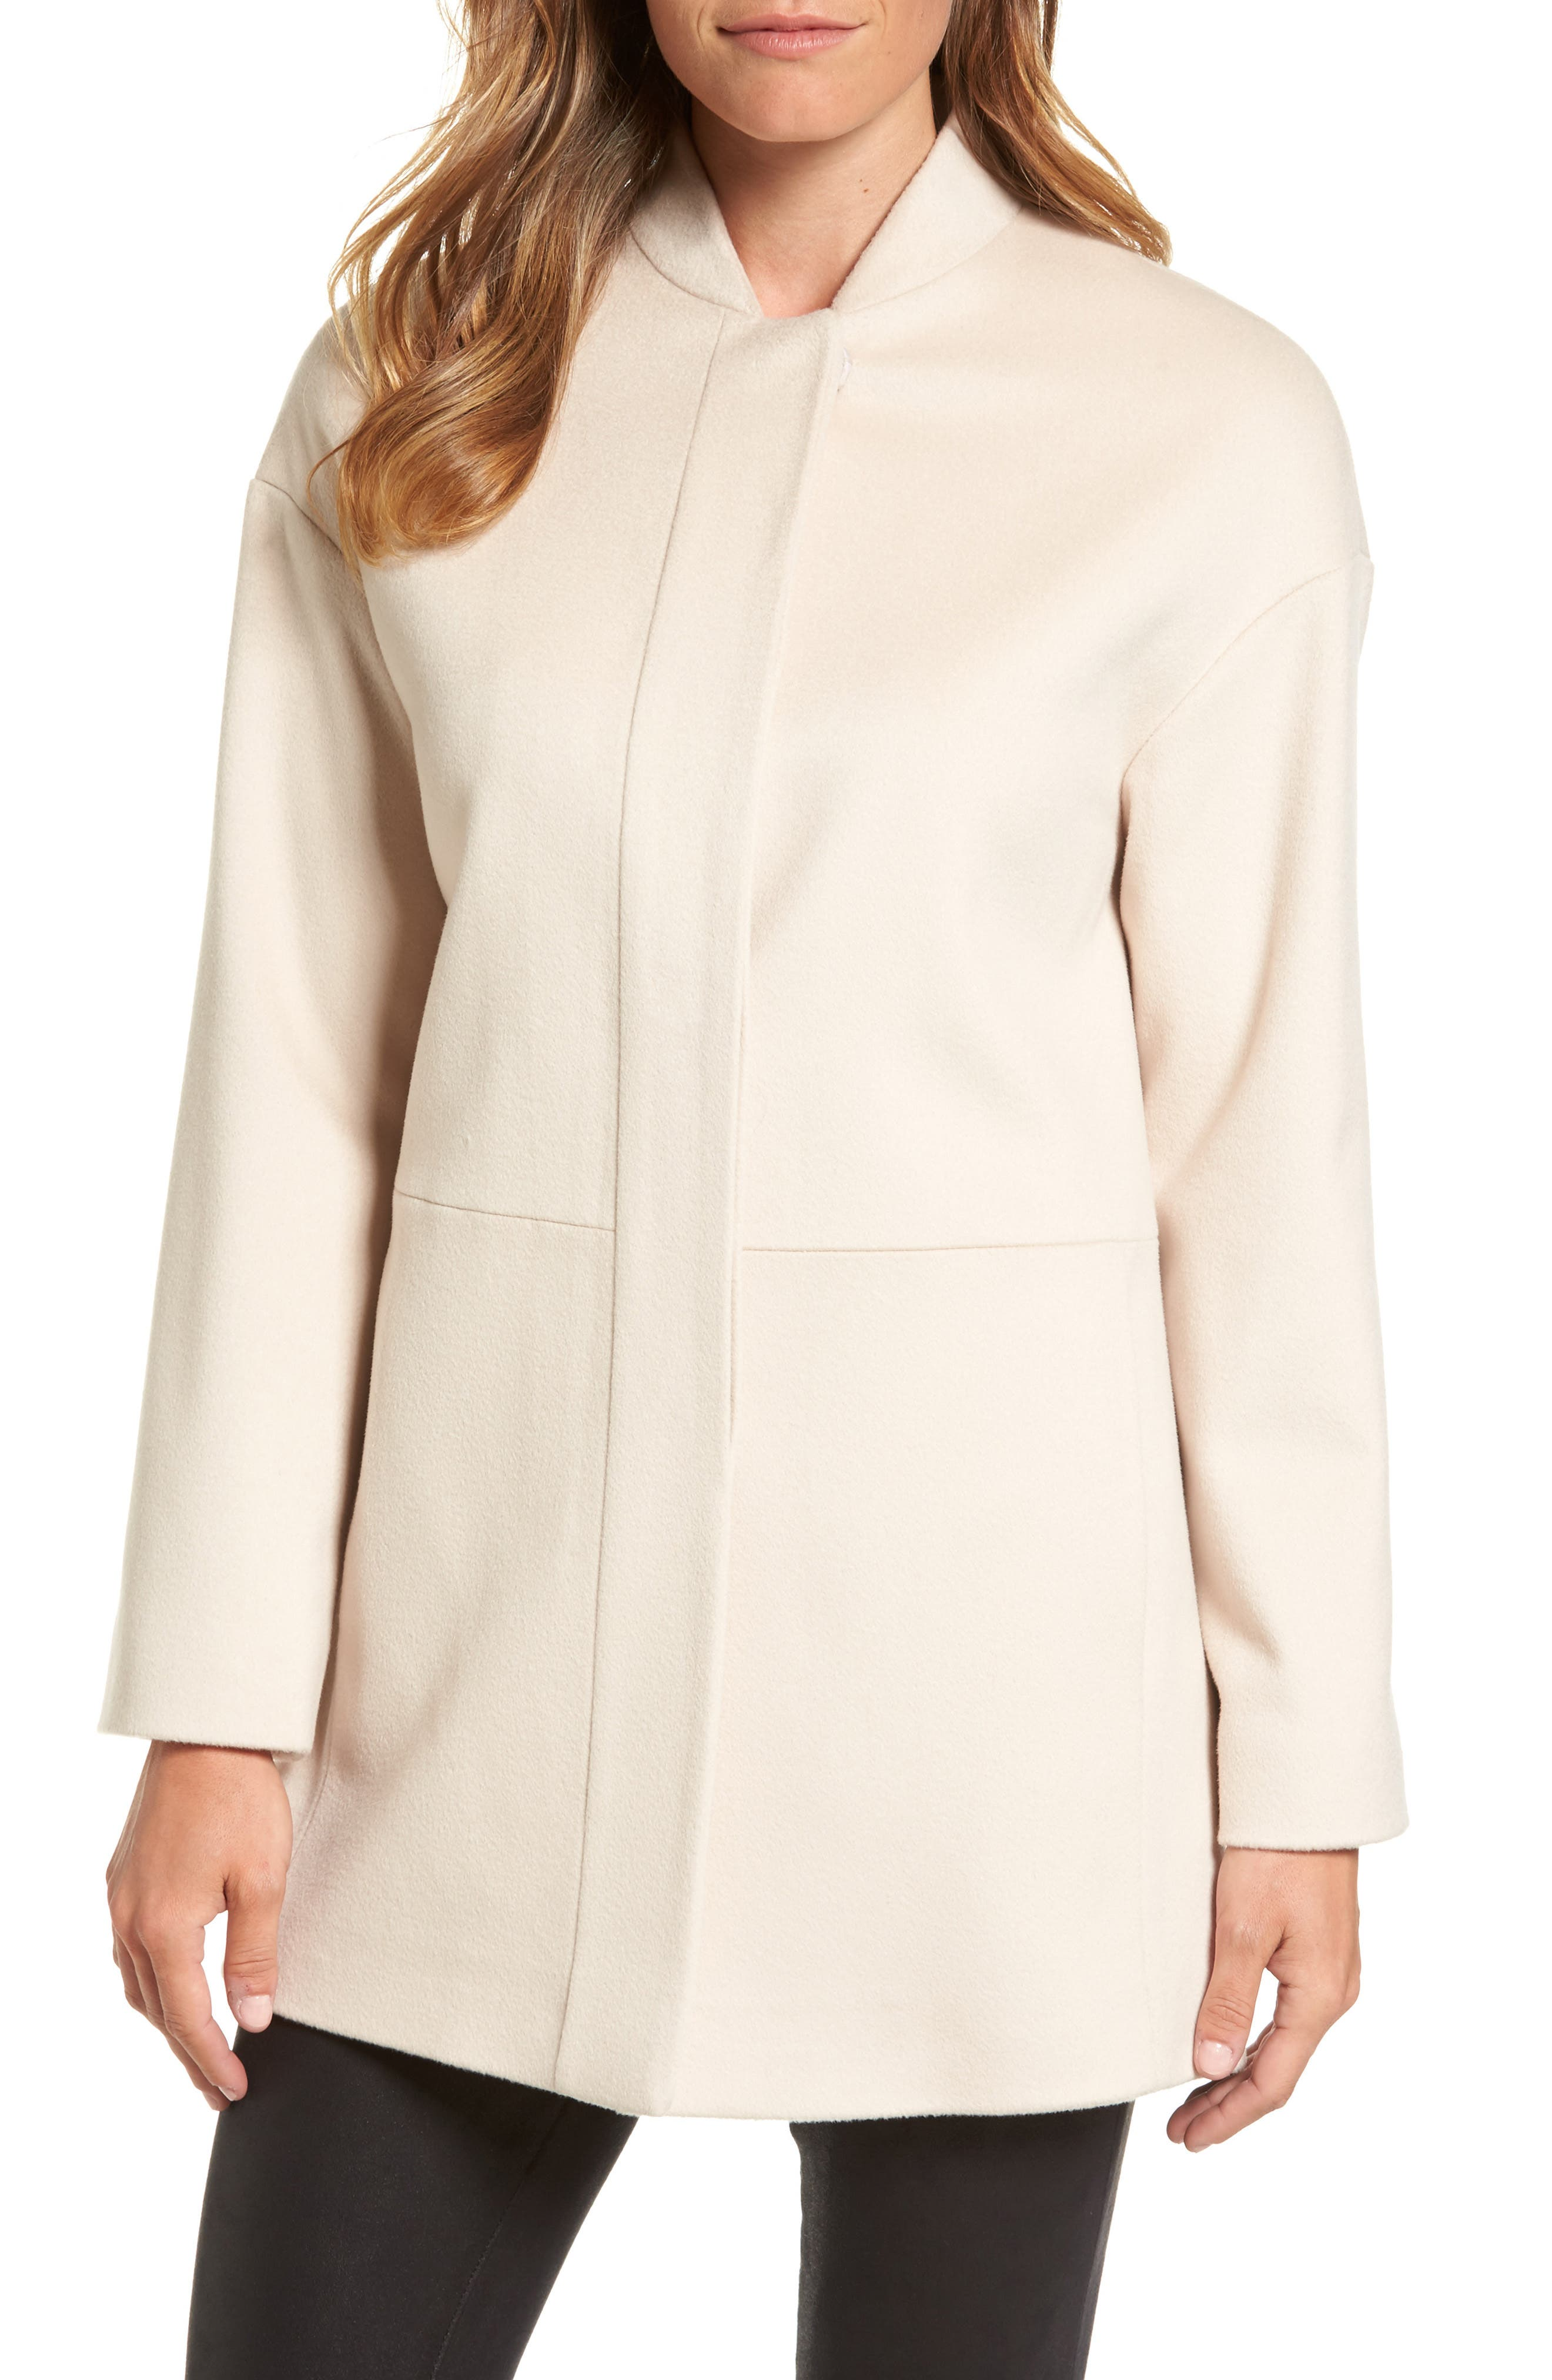 Fleurette Loro Piana Wool Coat (Nordstrom Exclusive)